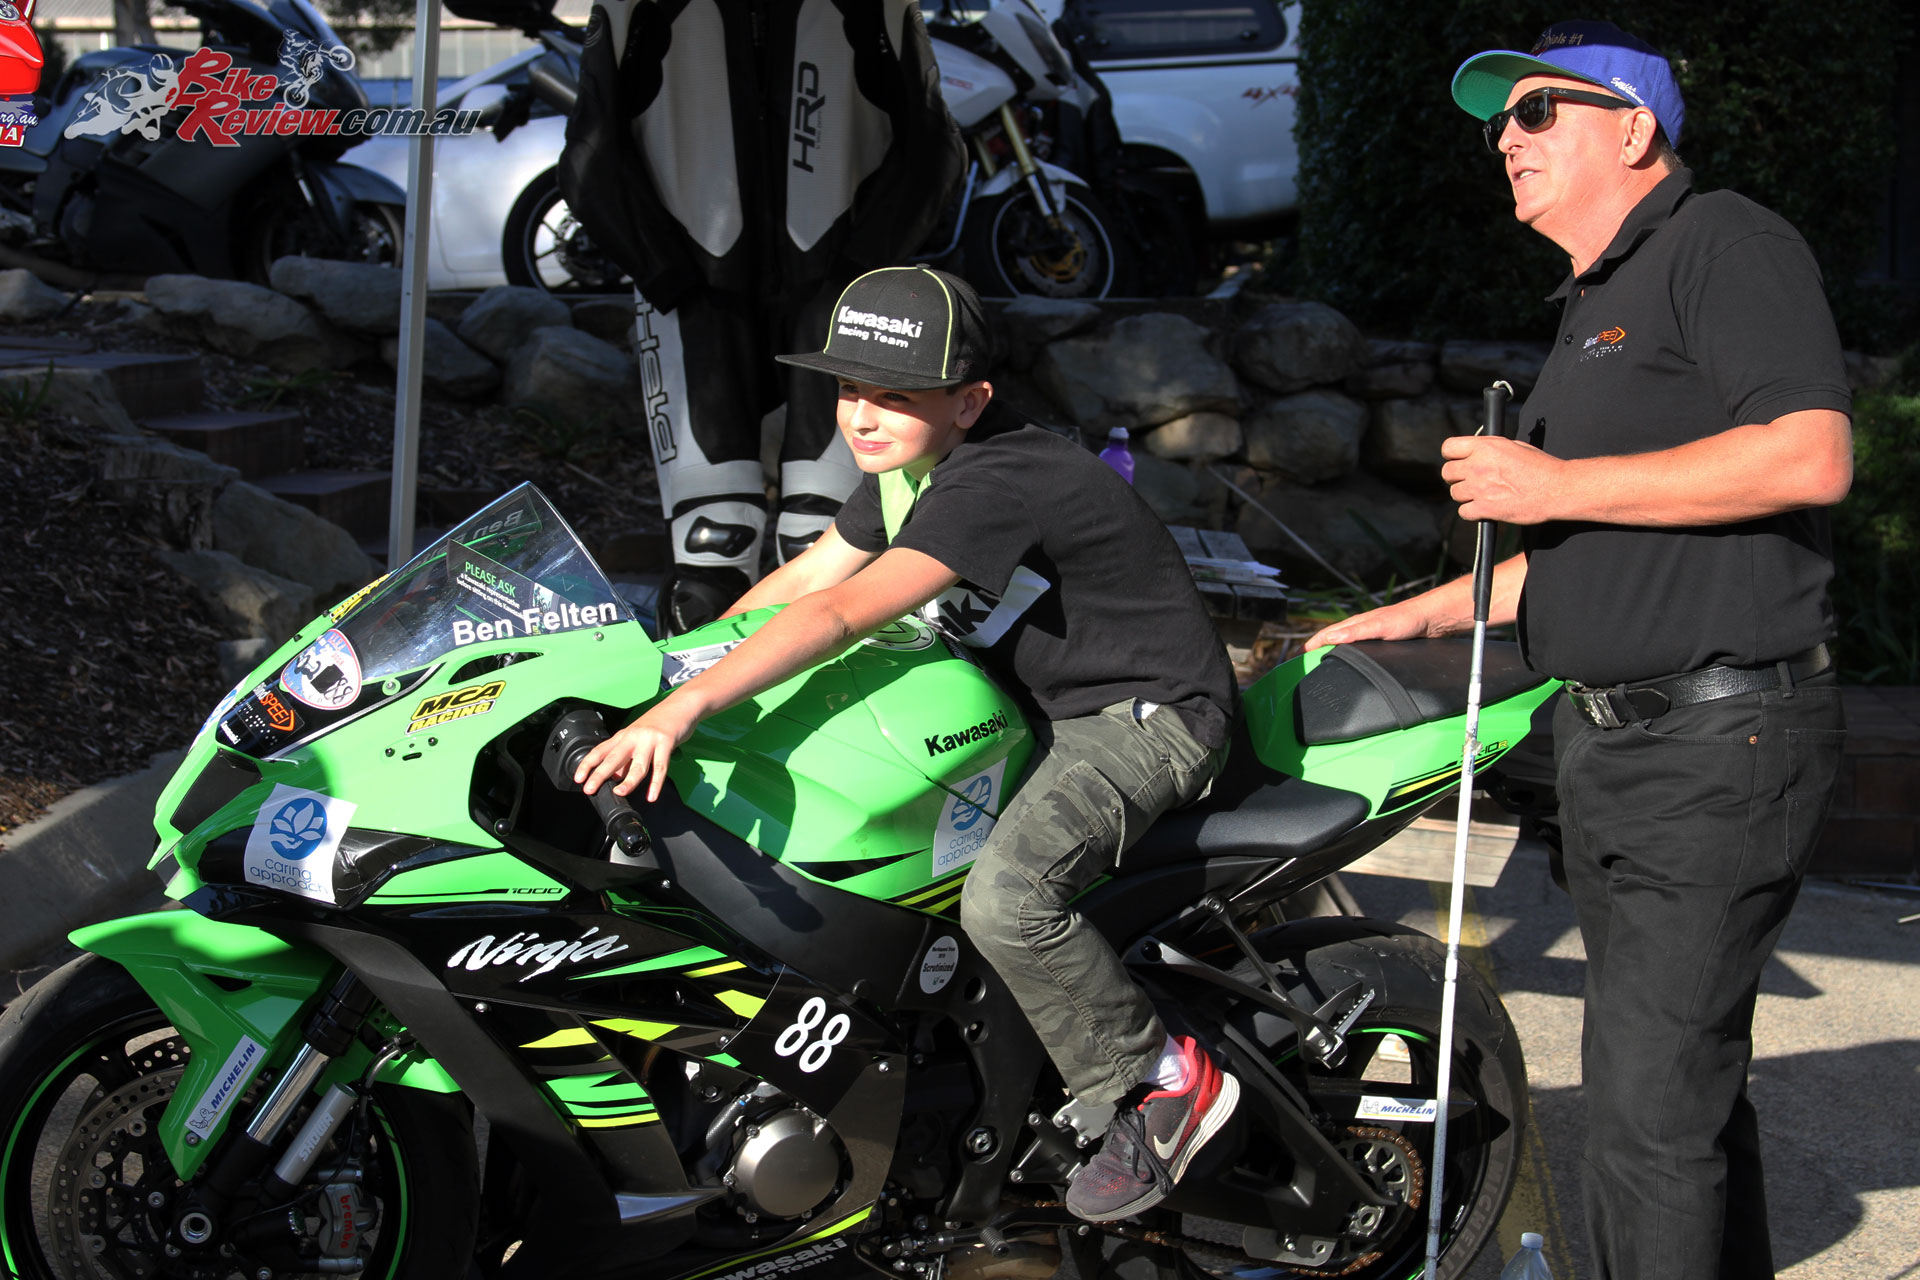 Ben Felten and his ZX-10R